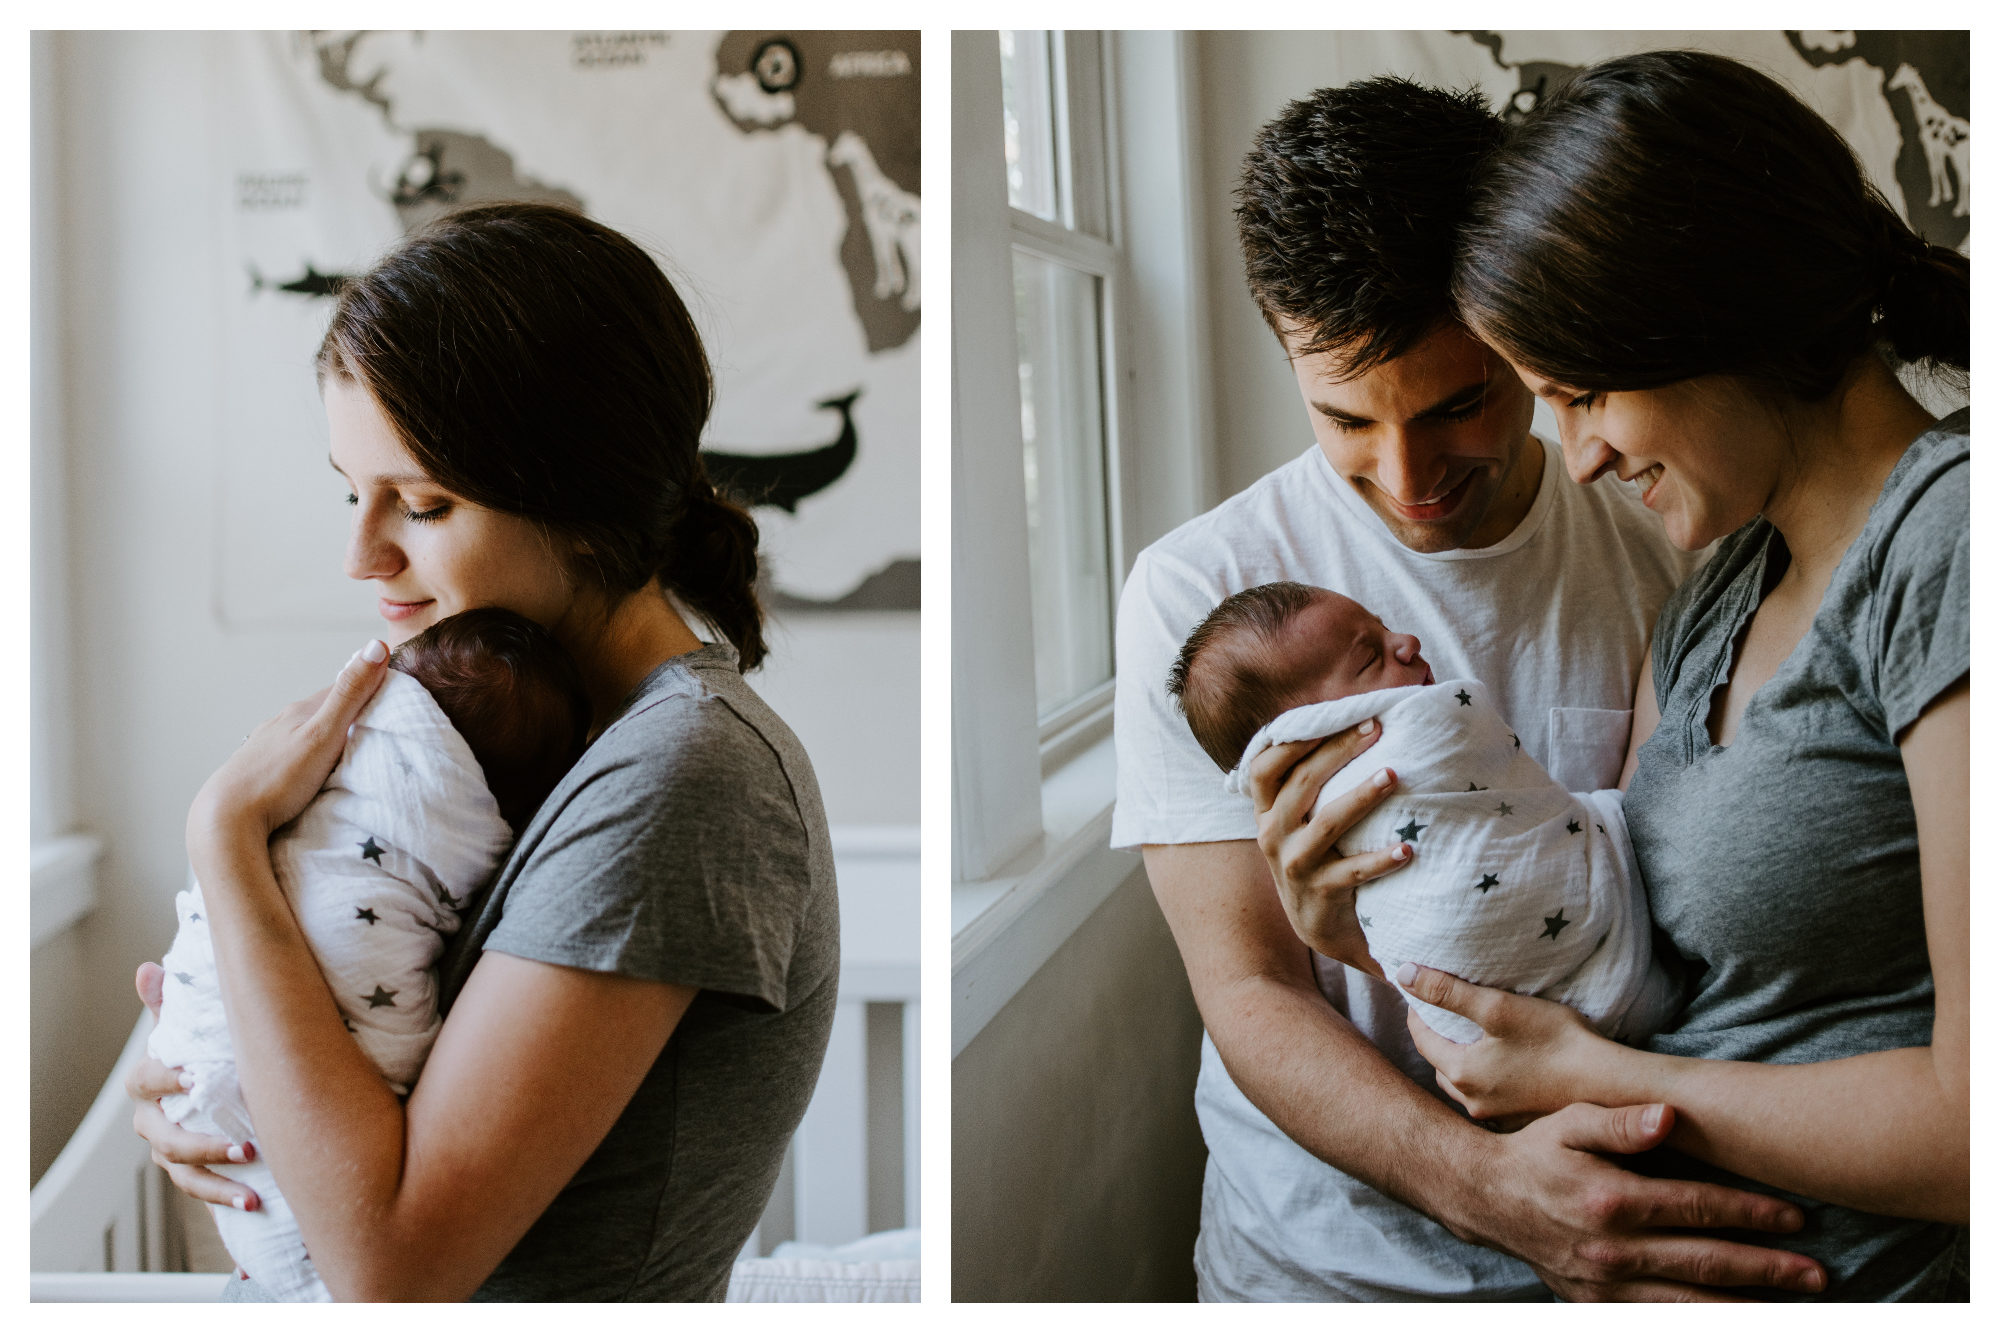 Parenting in Paris can be tricky, so it's important to be able to meet like-minded parents, like this mother holding her newborn baby (left). A mother and father looking at the newborn baby (right).